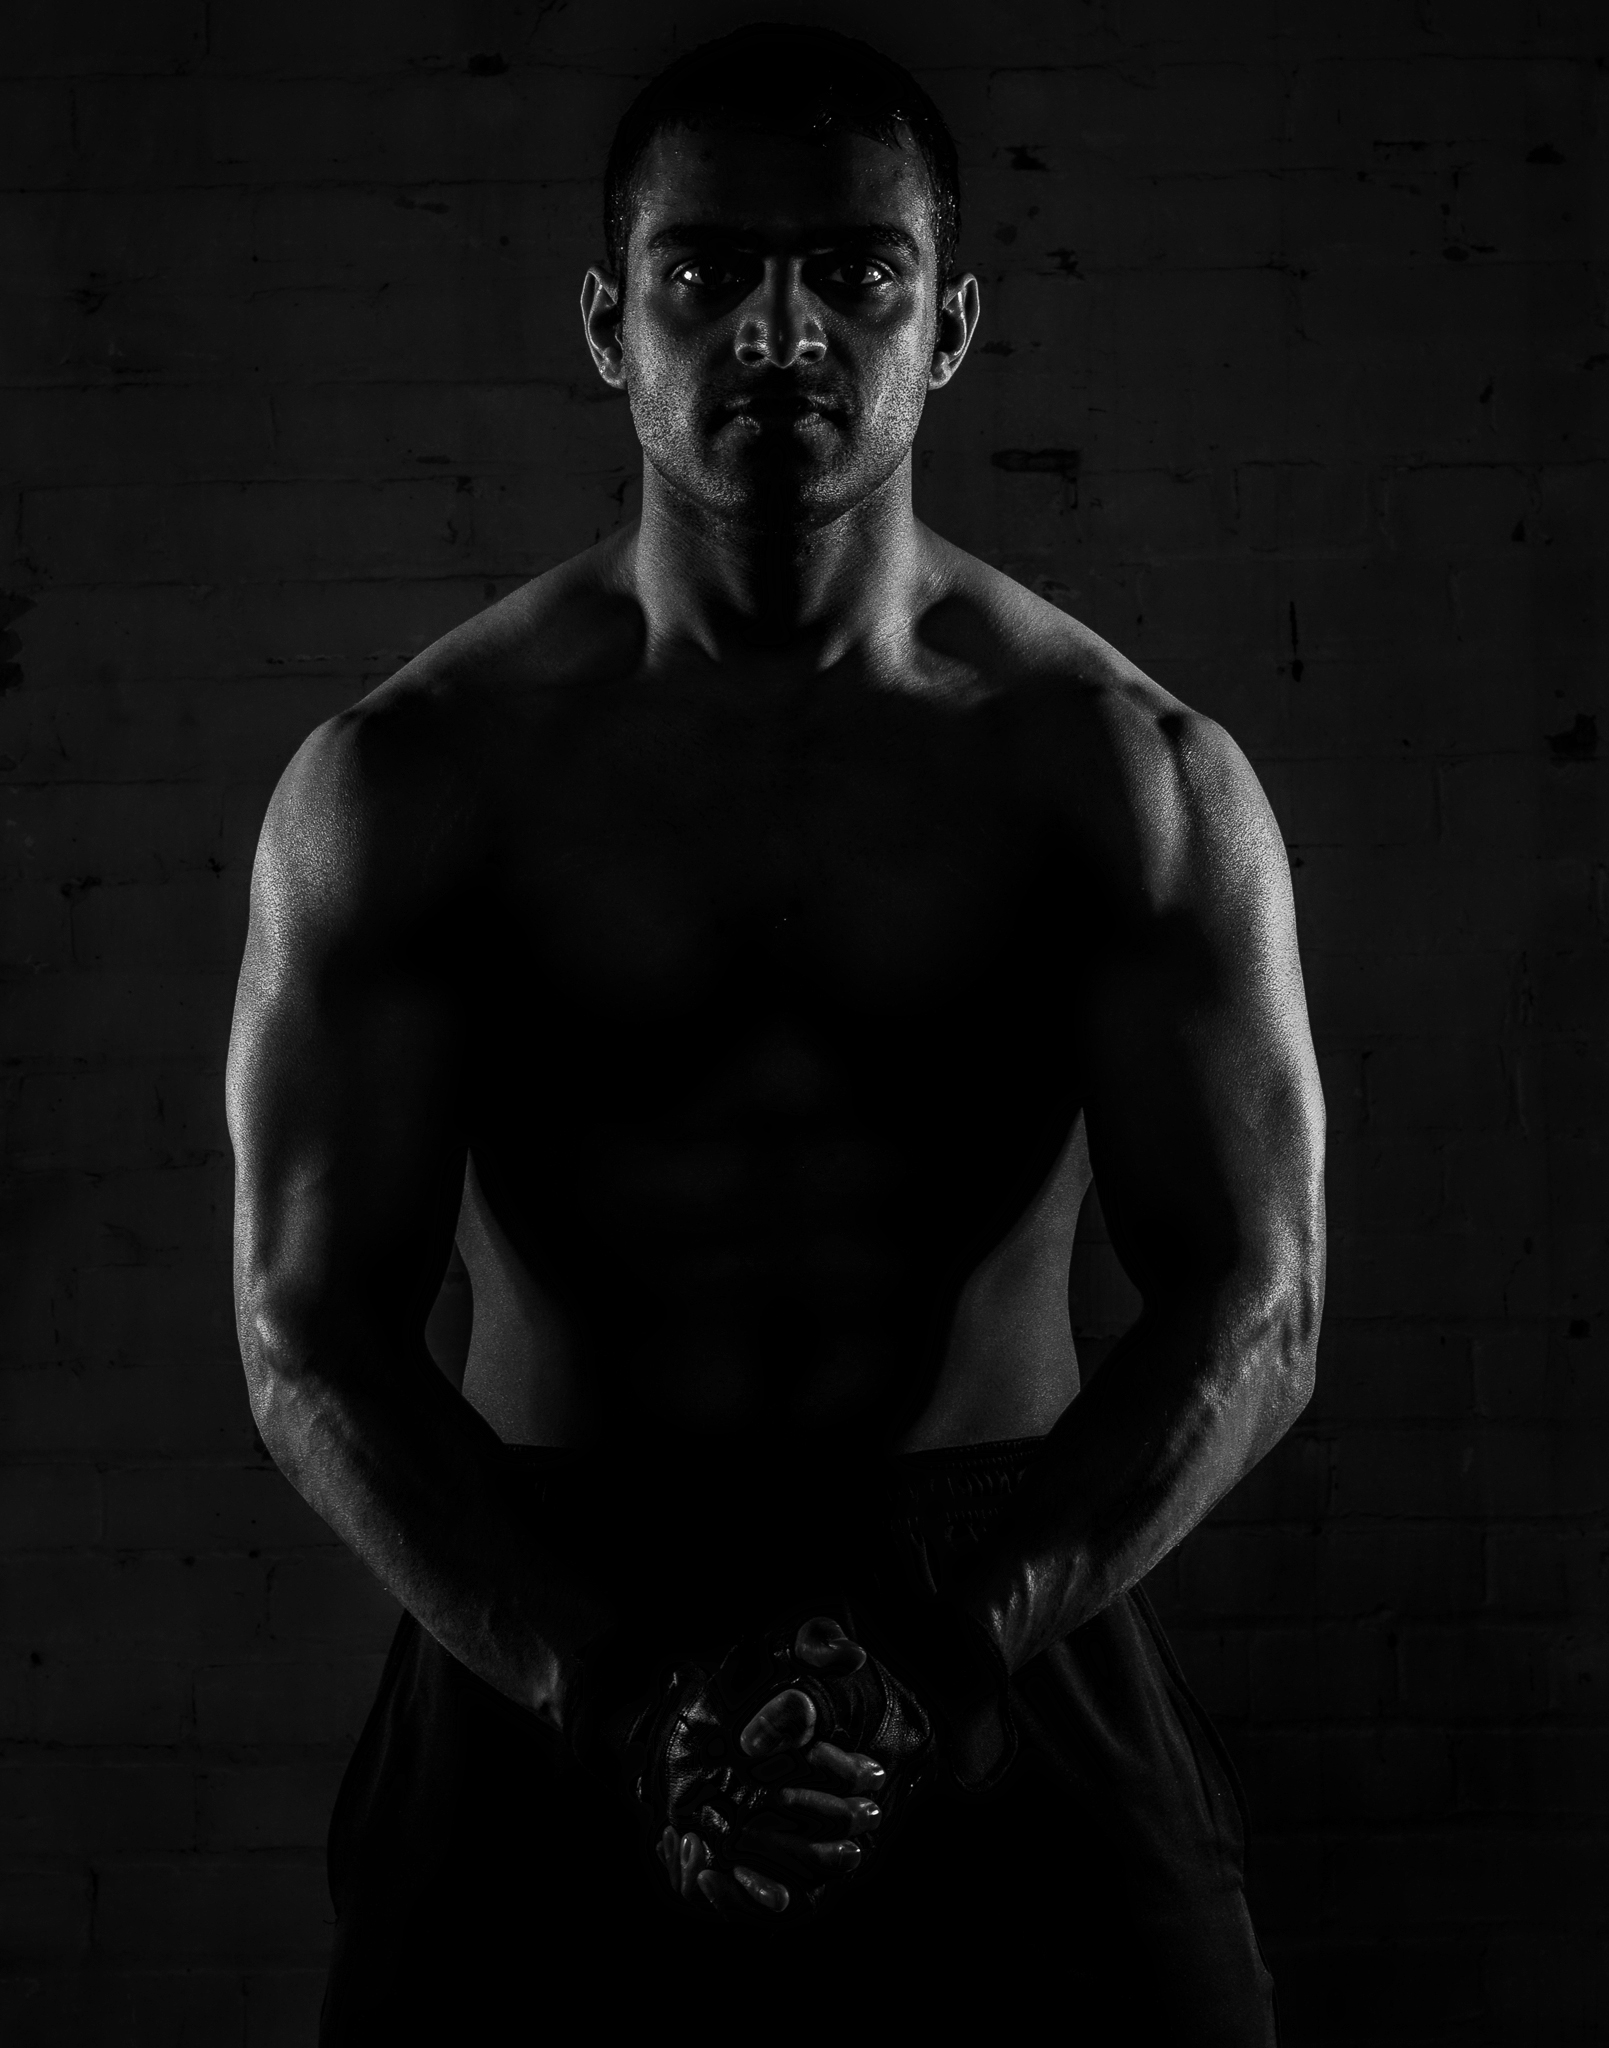 health-fitness-photography-man-muscles-flex-black-white-workout-sweat-Toronto-Ontario-Canada-photo-by-Kevin-Patrick-Robbins-2048.jpg